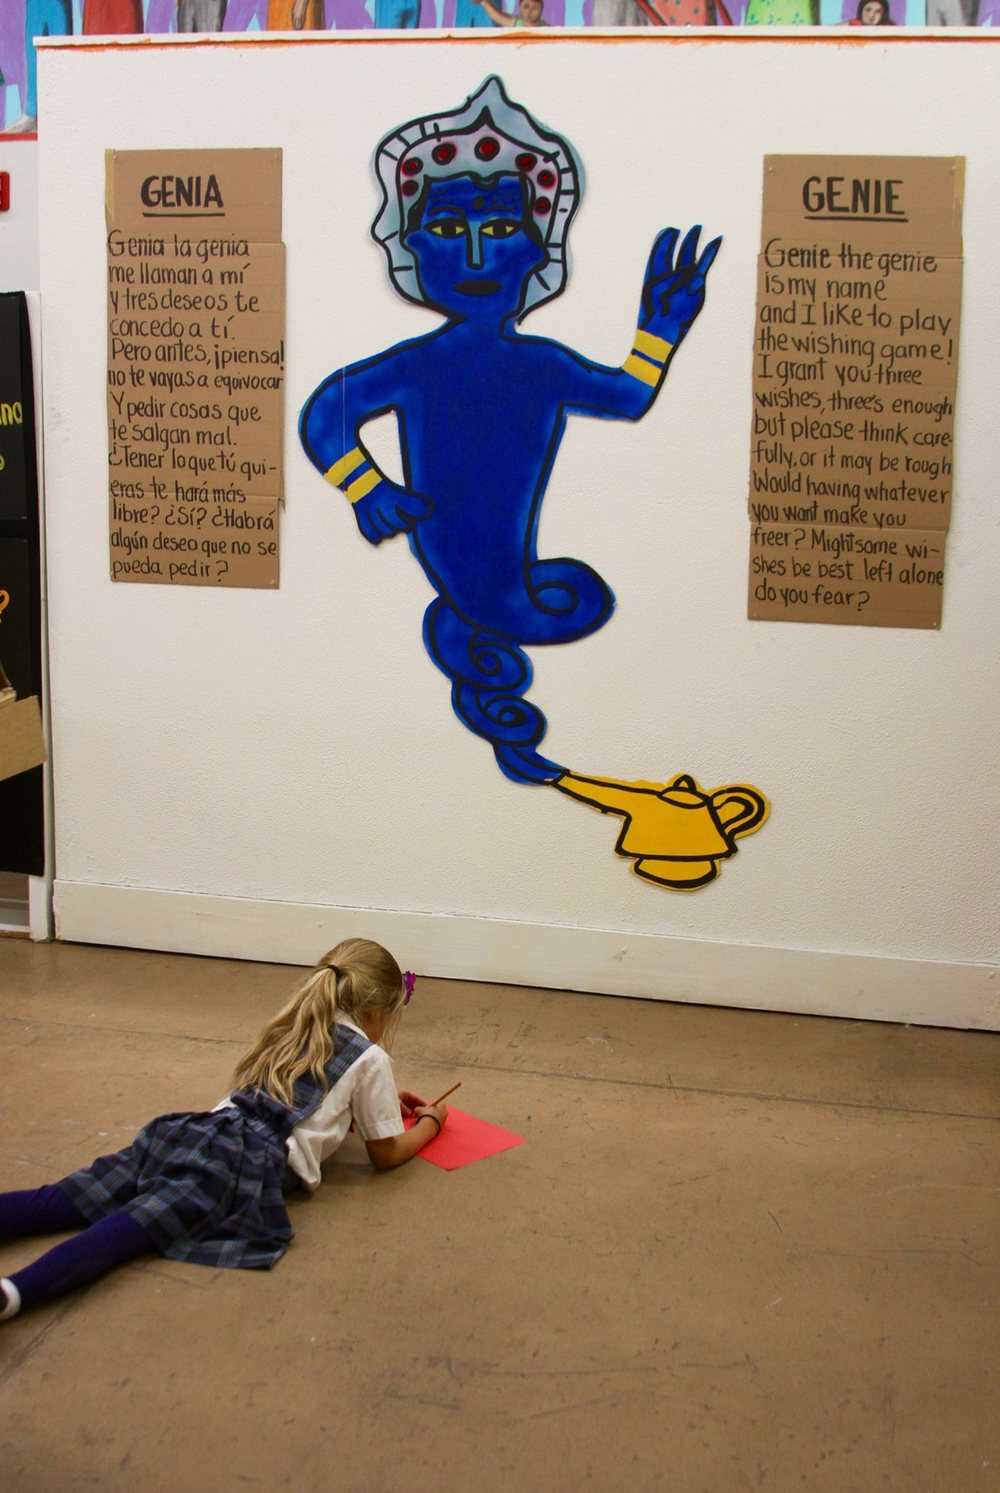 'Genie the genie.' Photo credit: Luis Hernández from El Diario de El Paso.